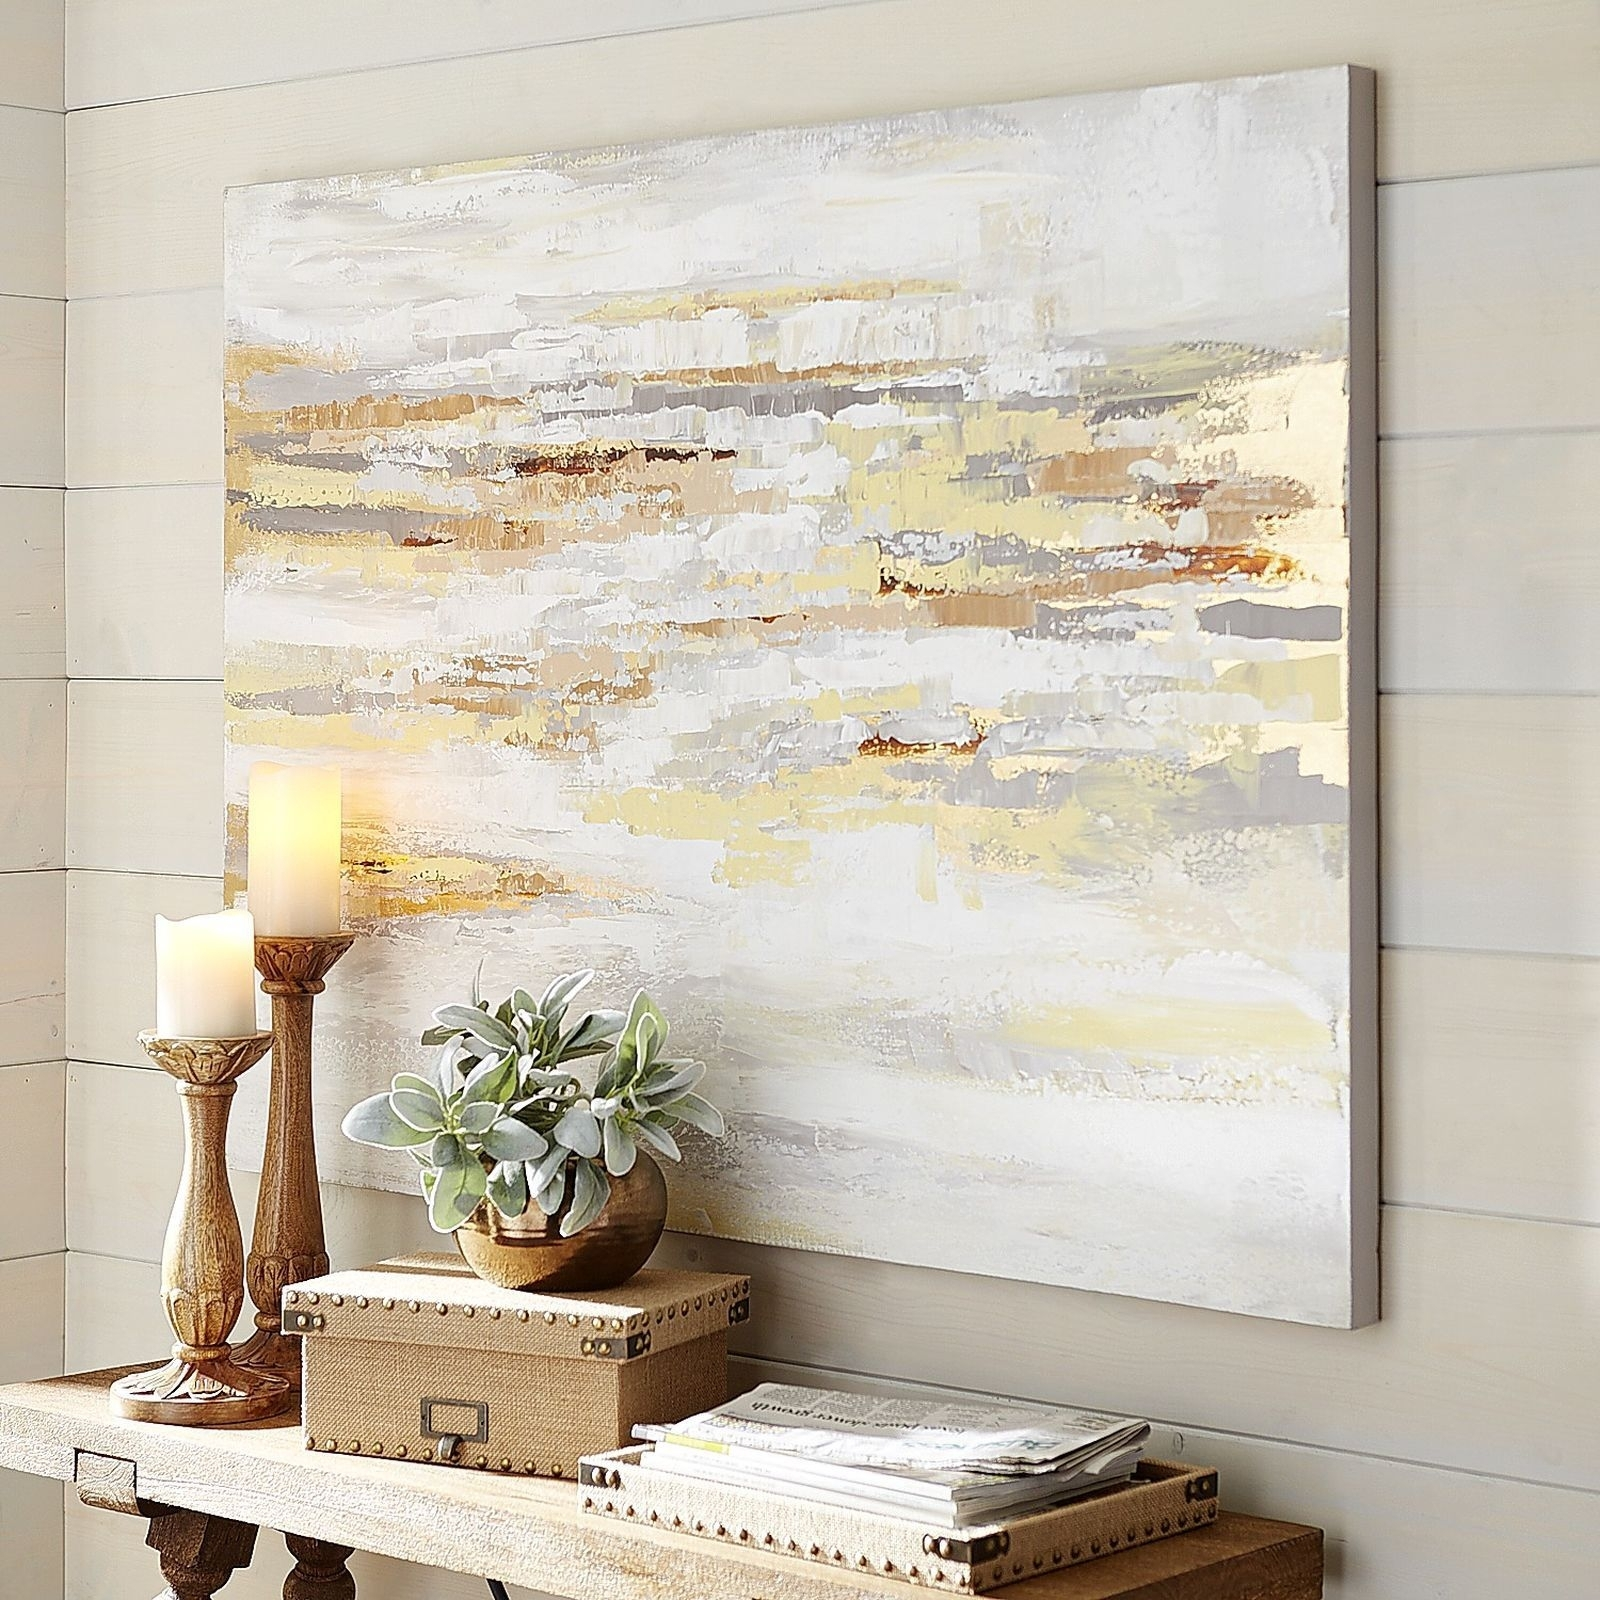 Muted Shades Multiply Your Options When Considering Wall Art For Inside 2018 Neutral Abstract Wall Art (View 2 of 20)